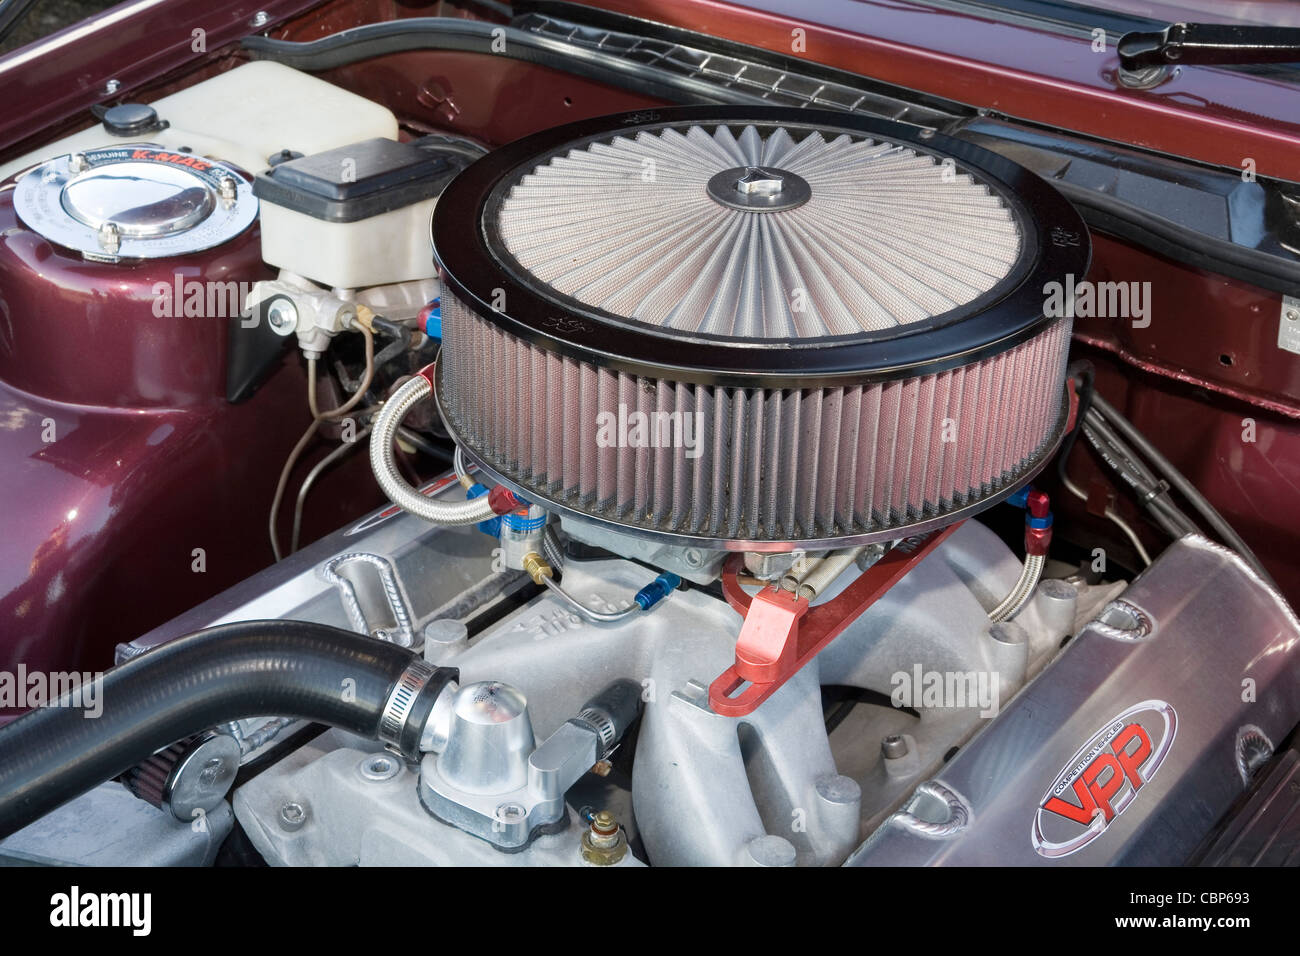 Muscle Car Engine Air Cleaners : Circular air filter cleaner in the engine bay of a